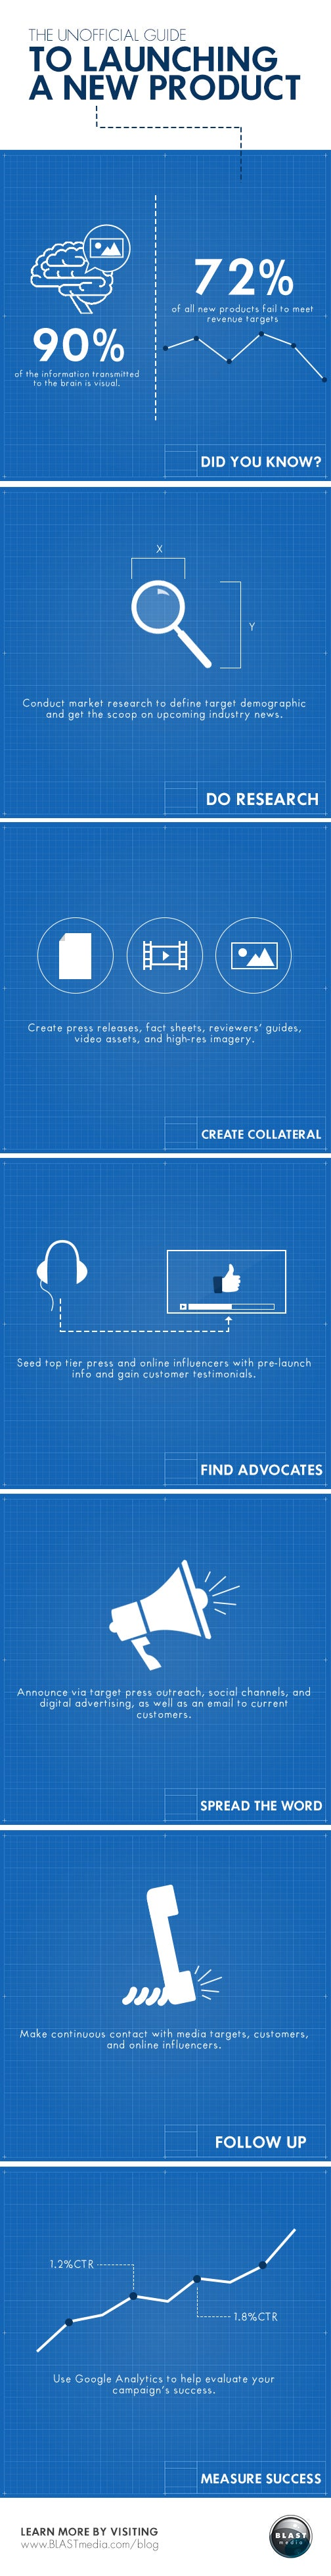 A Blueprint for a Killer Product Launch (Infographic)